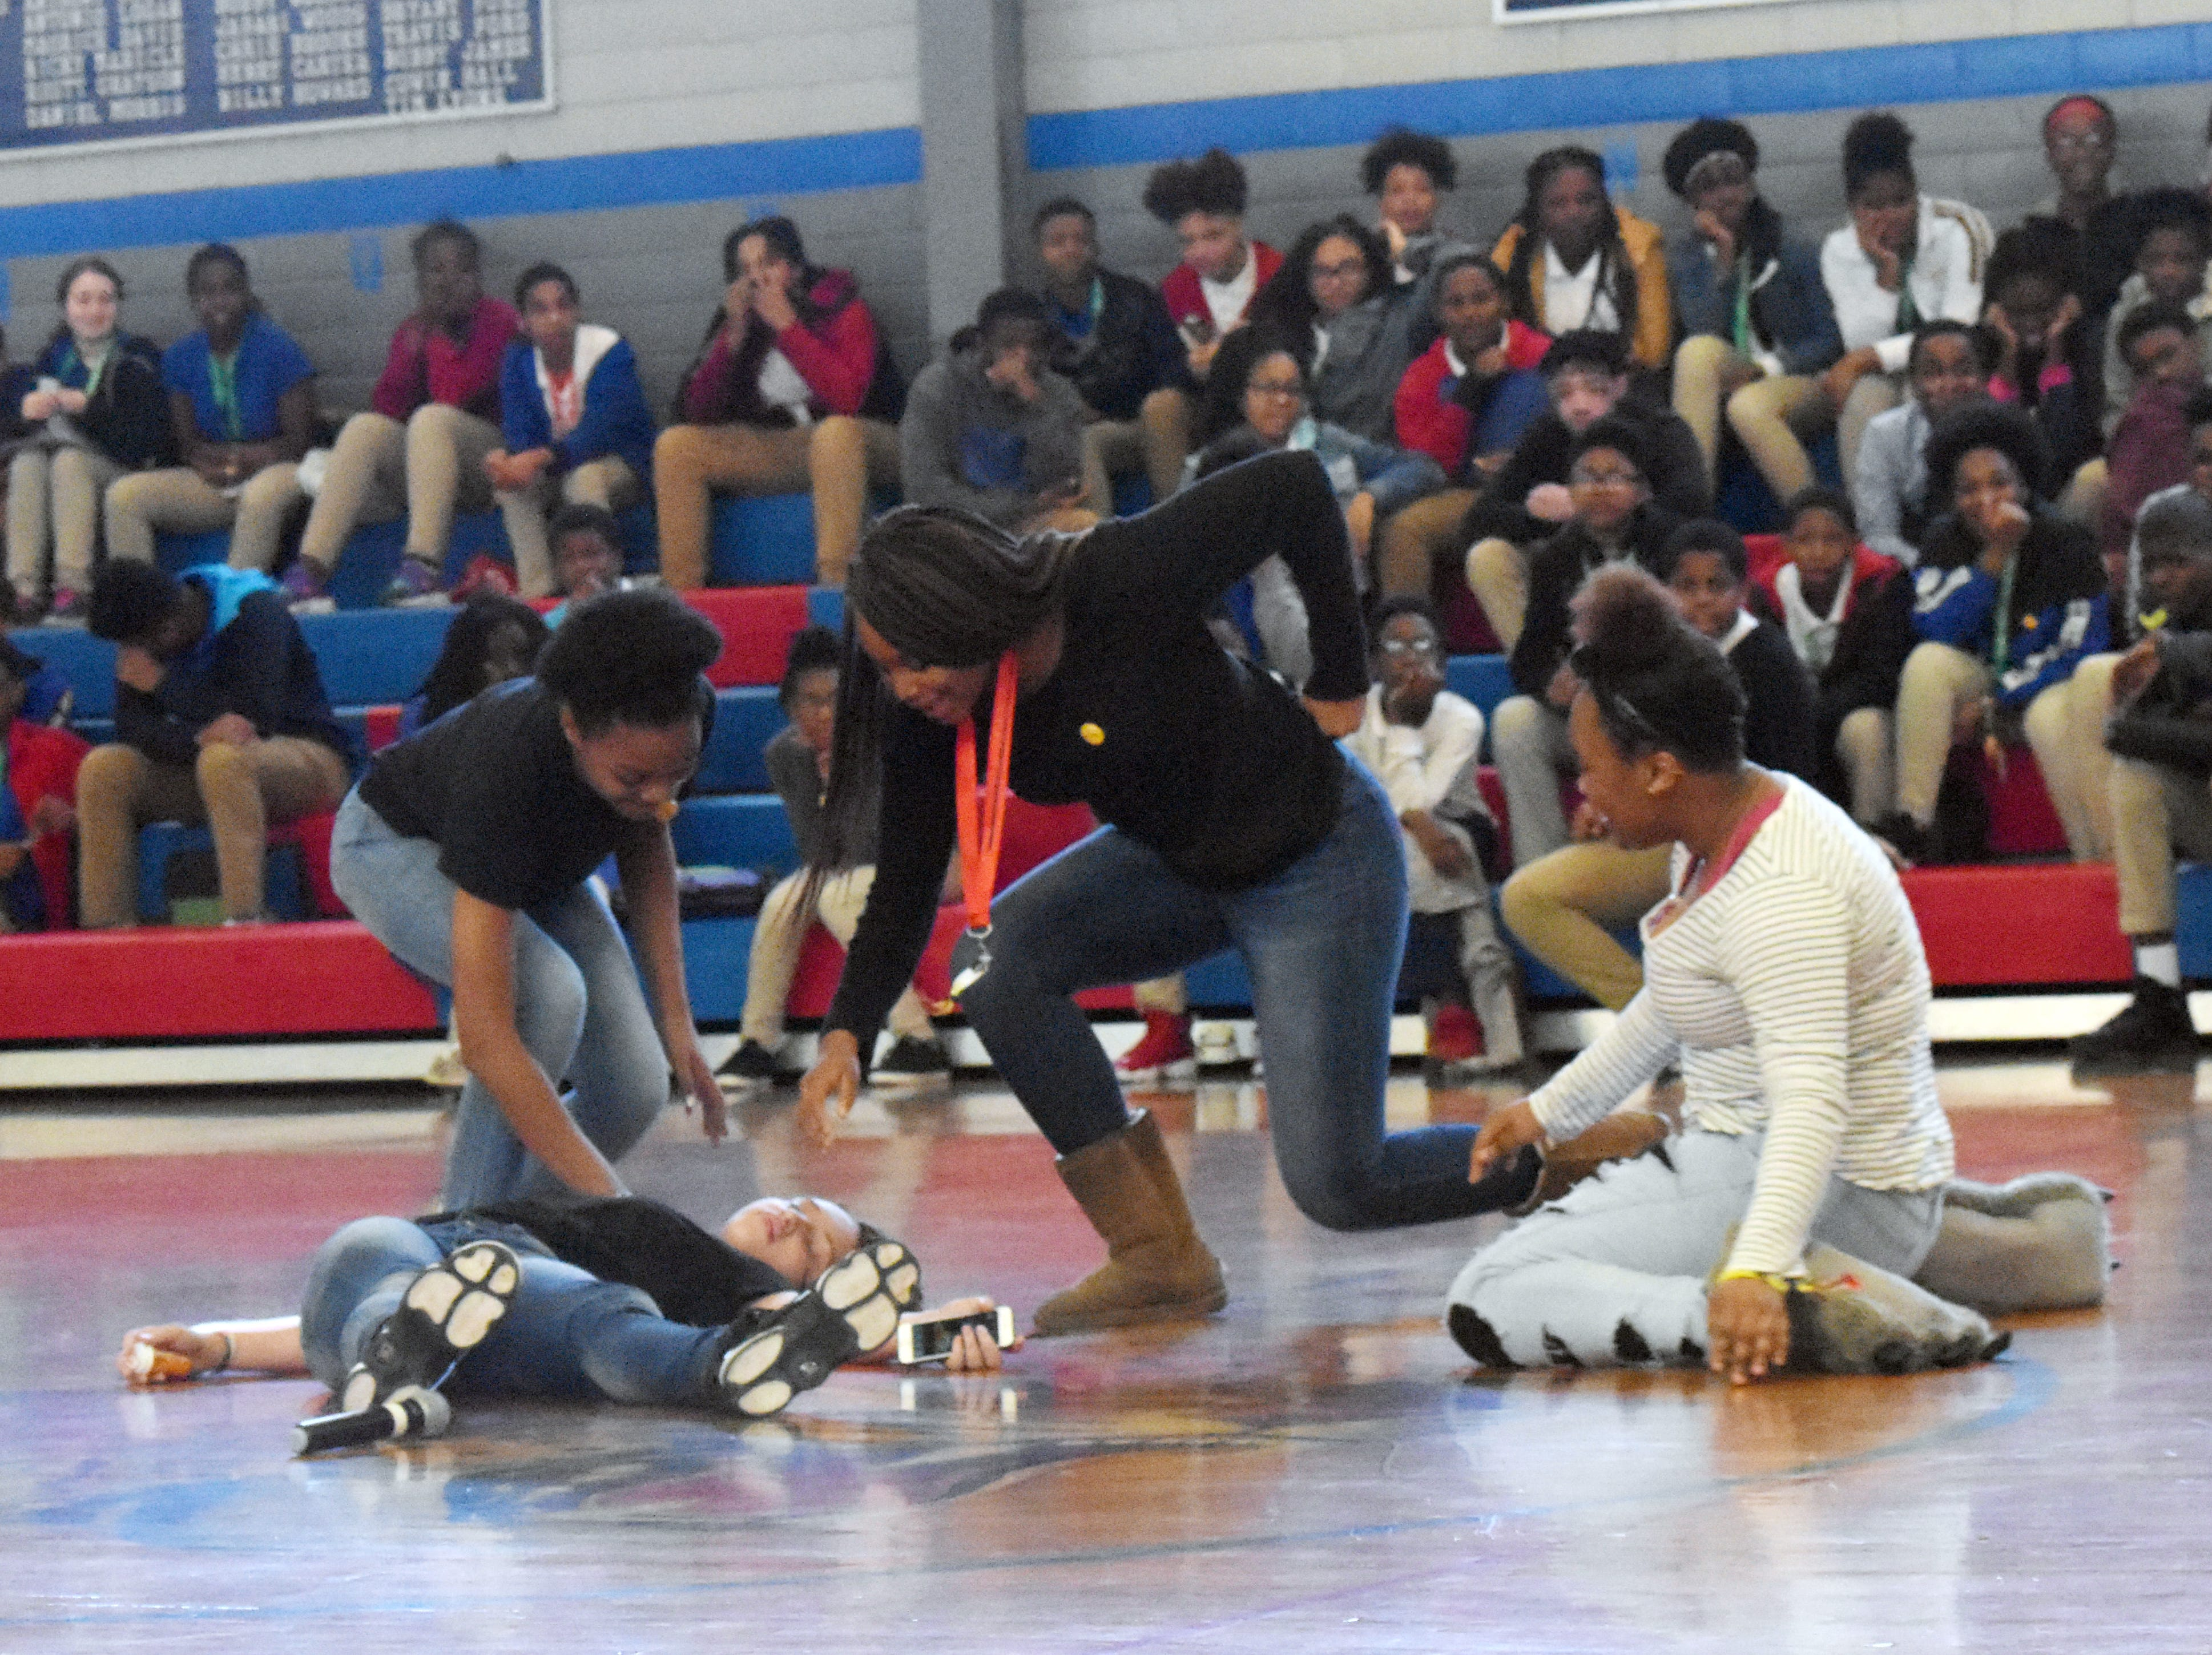 """Members of the Living Healthy Club at Alexandria Middle Magnet School perform a skit about the dangers of drug use during an assembly held Kick Butts Day. The students wrote the skit and came up with the activities for the assembly. AMMS was one of 53 schools in Central Louisiana participating in Kick Butts Day with funding from the Healthy Behaviors School District Partnership Grant from The Rapides Foundation. Kick Butts Day is recognized nationally by young people to raise awareness against the use of tobacco products. A press release from The Rapides Foundation states, """"The Healthy Behaviors School District Partnership Grant seeks to prevent and reduce tobacco use, substance and alcohol abuse, and overweight/obesity by focusing on changing policy, social norms and environments. Grant activities are based on best and promising practices to create comprehensive school- and community-based awareness and prevention programs in order to positively impact Central Louisiana students, educators and staff. The goal is to provide the knowledge and skills necessary to make better and informed behavior decisions leading to healthier lives."""""""